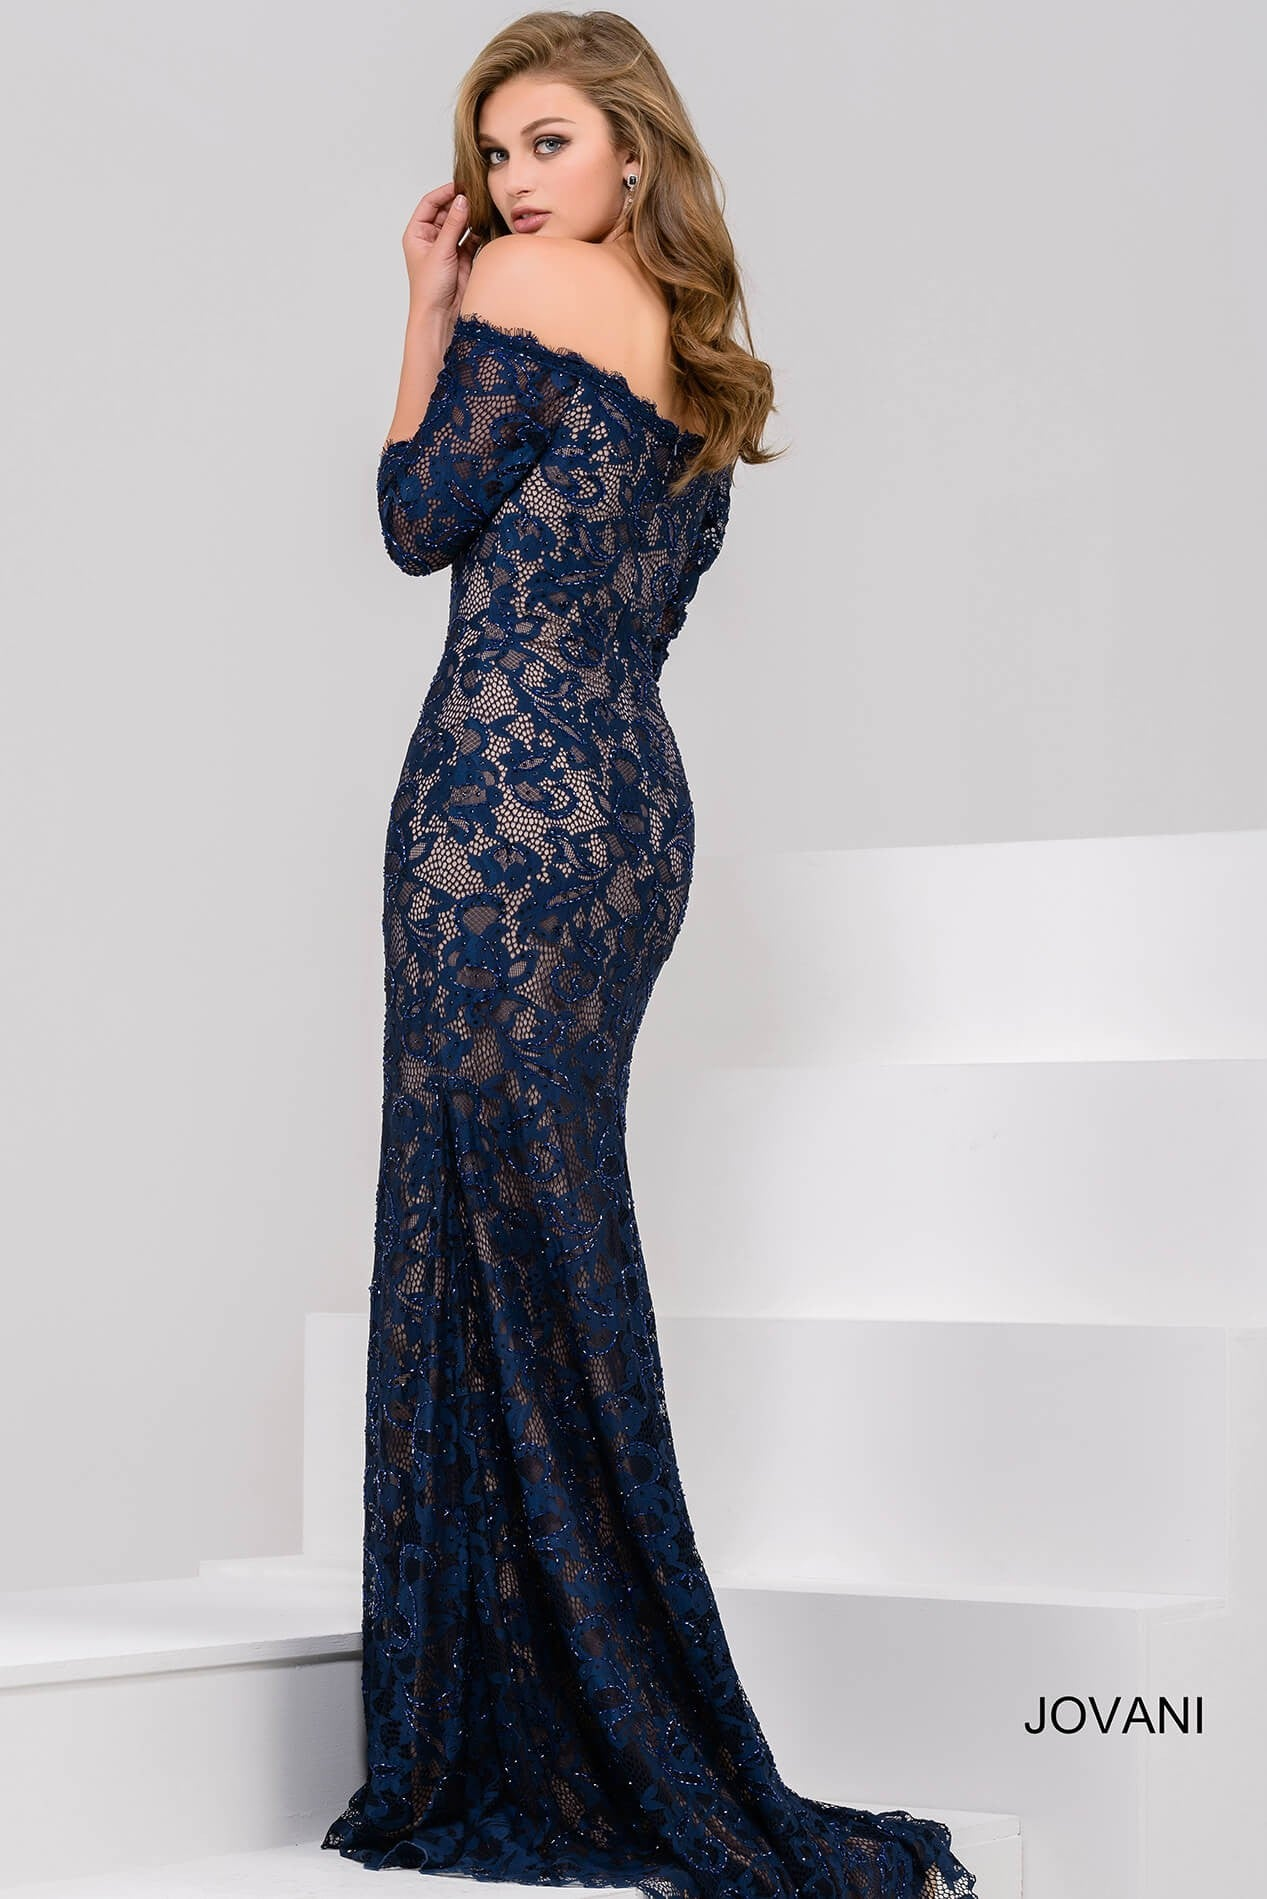 Jovani Gown #28131